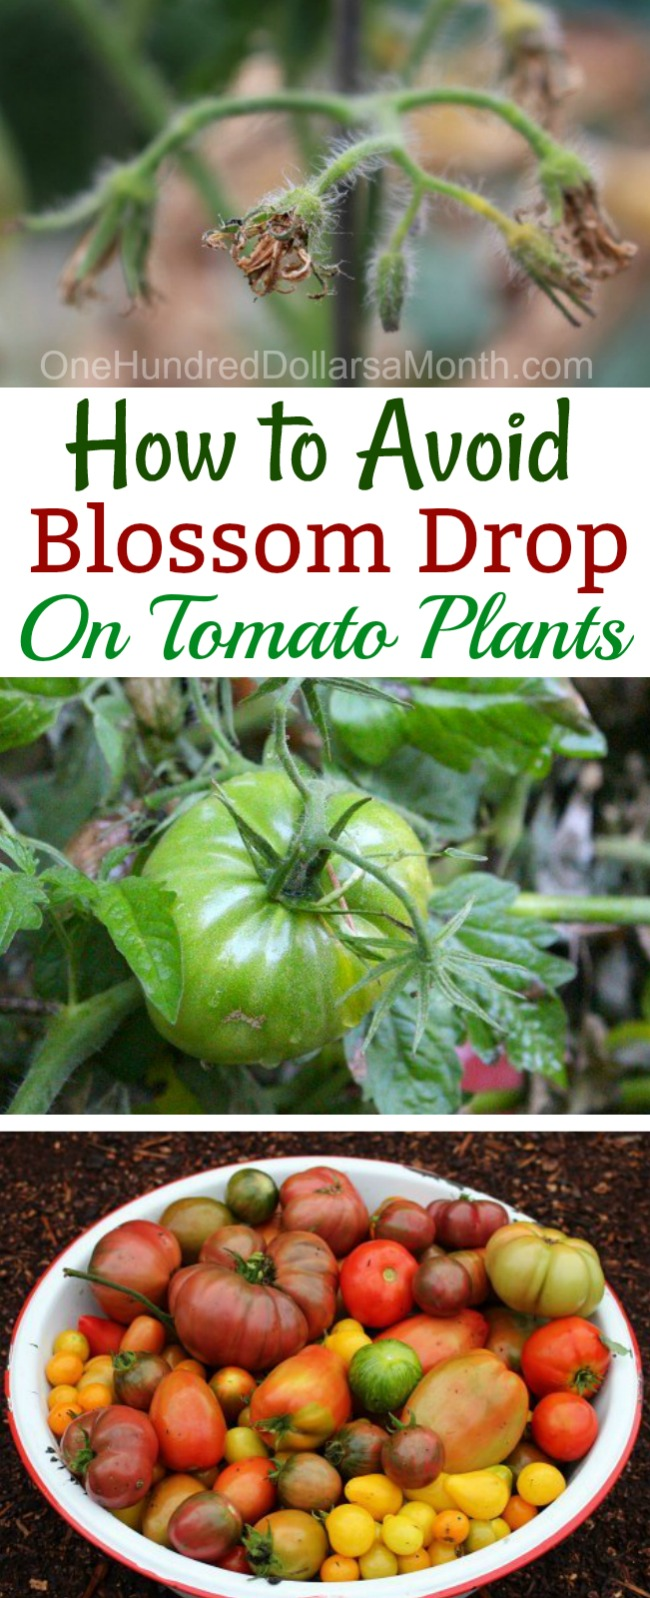 What Causes Blossom Drop in Tomatoes?